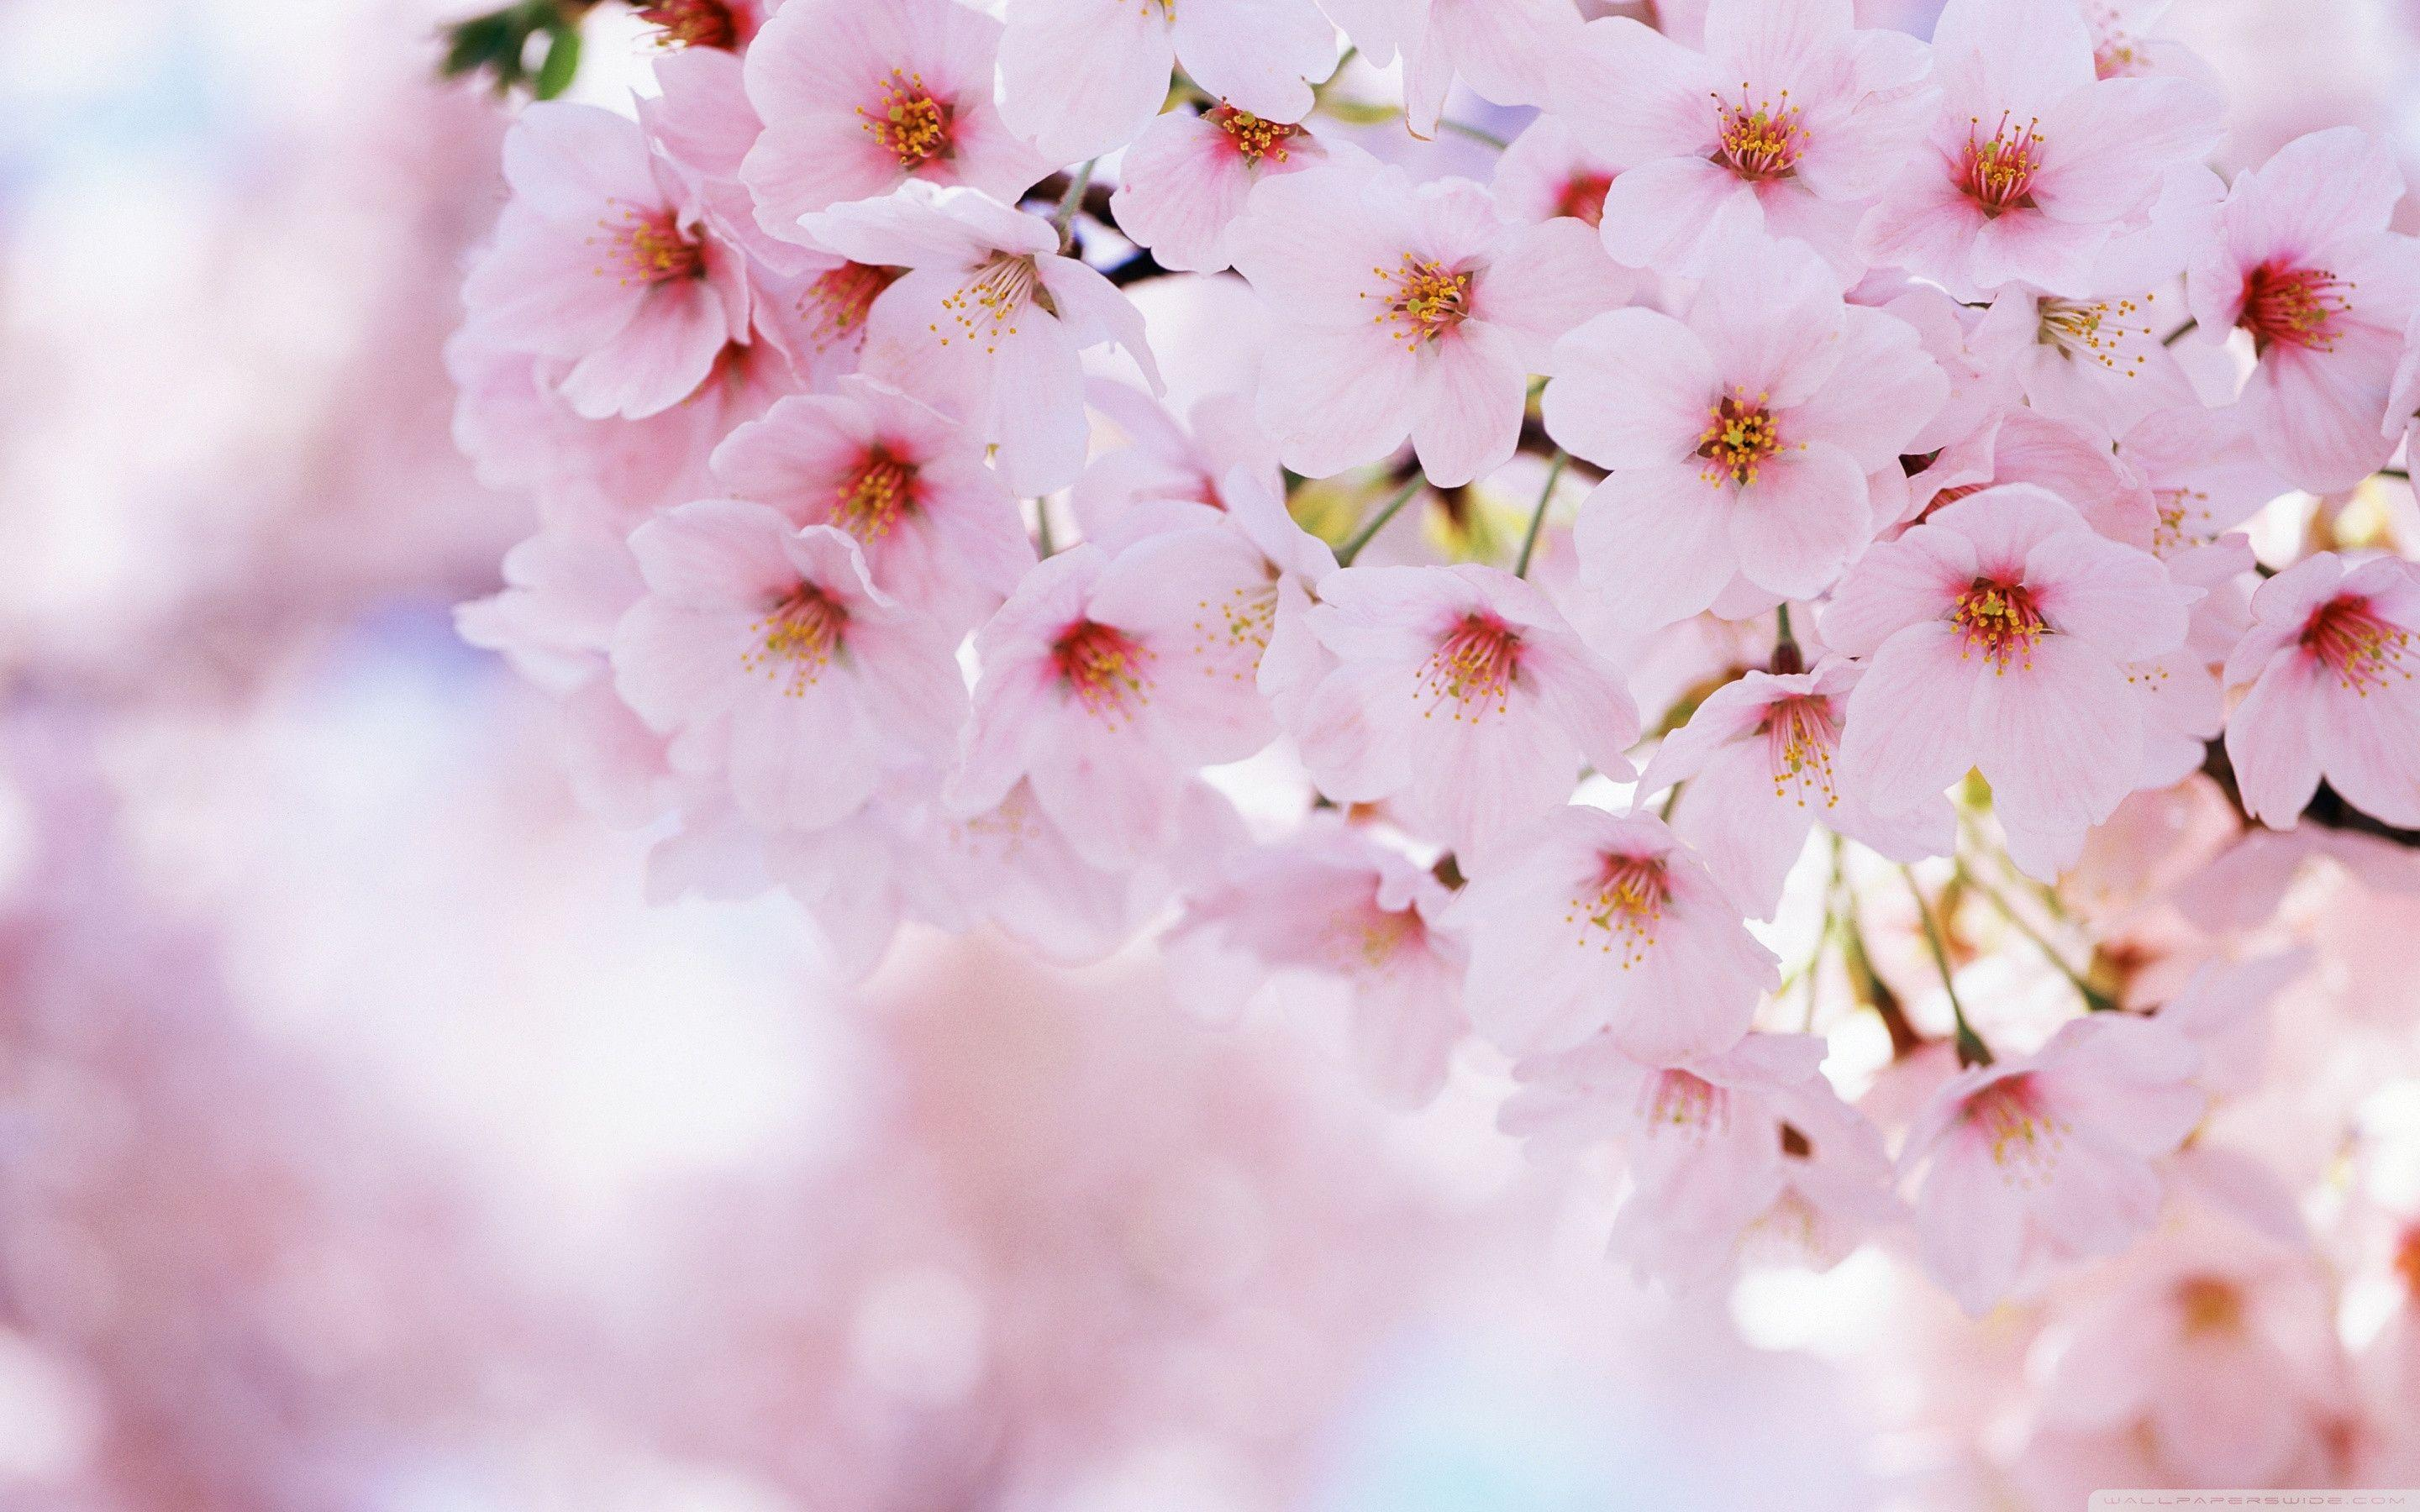 Best Blossomflower Wallpapers 8 Images 2880x1800